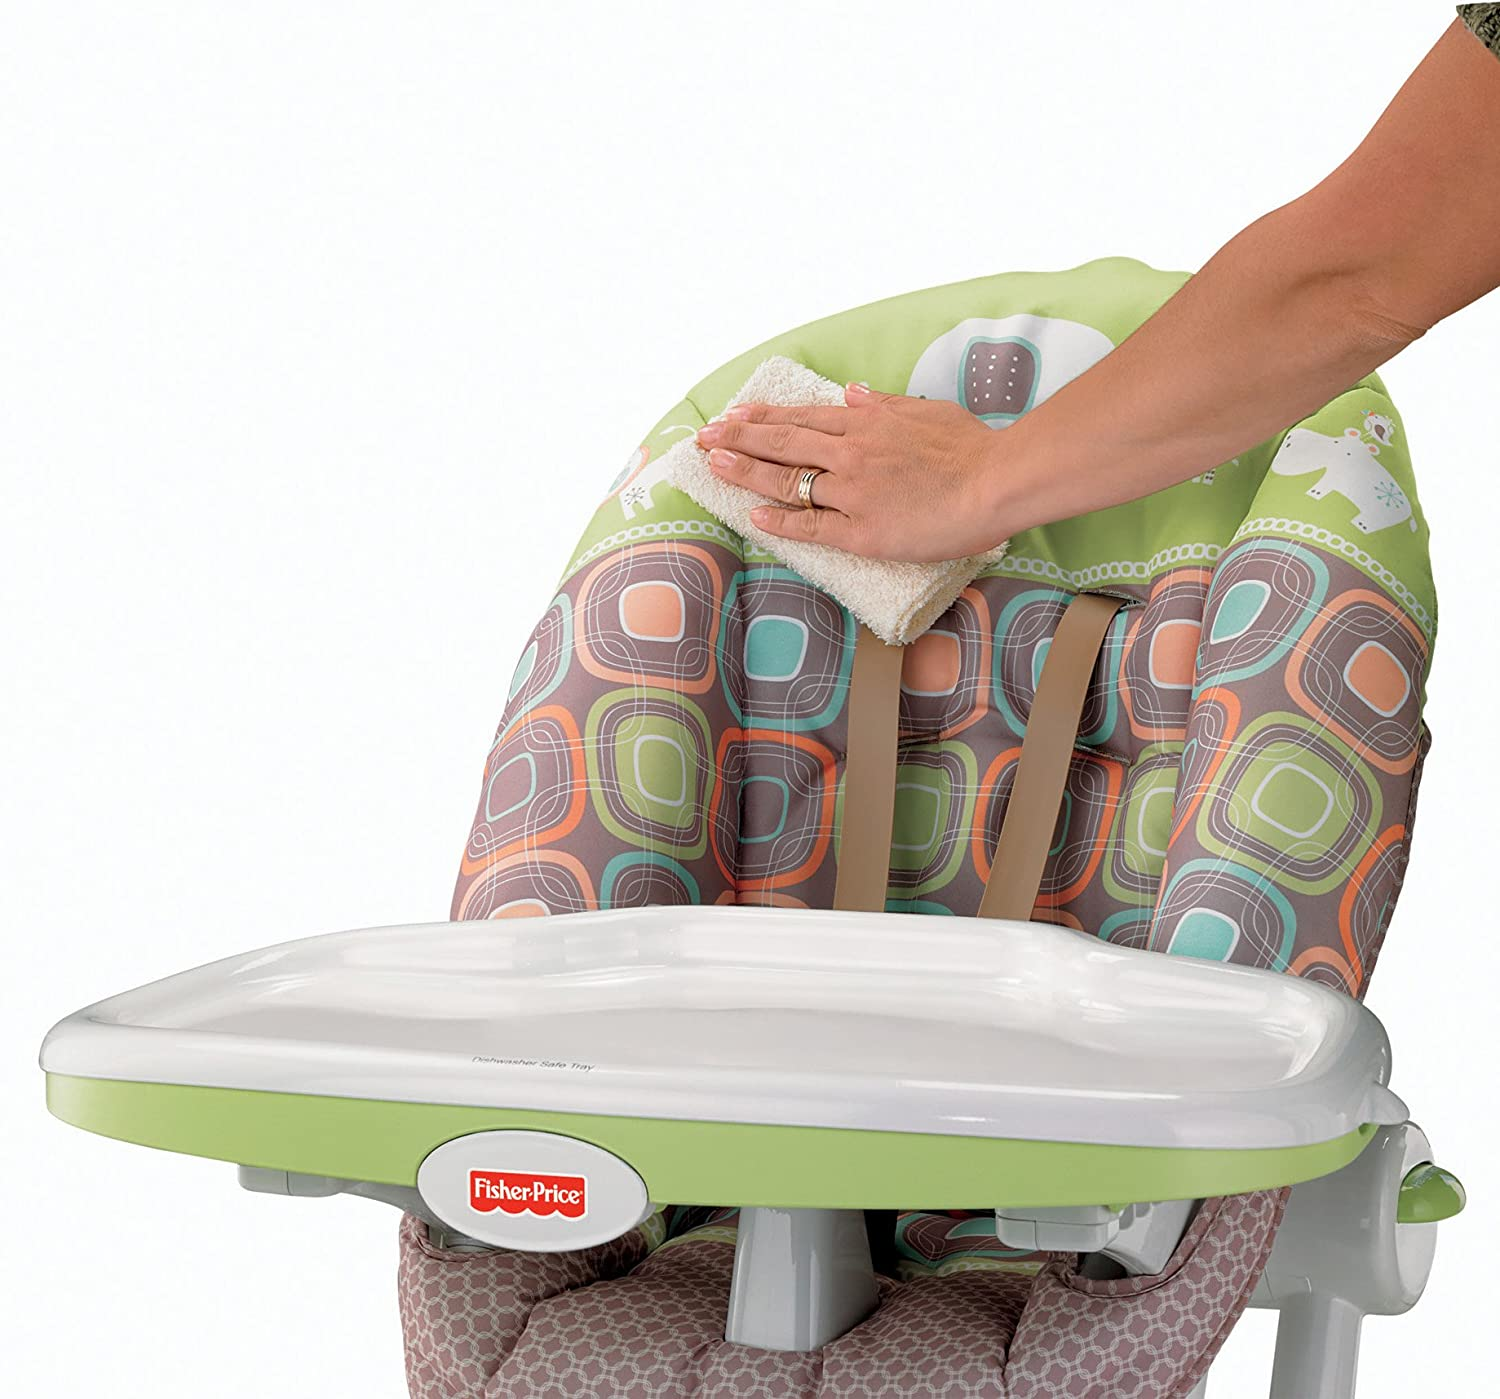 Chair fisher price high chair ez clean - Amazon Com Fisher Price Ez Clean High Chair Coco Sorbet Childrens Highchairs Baby